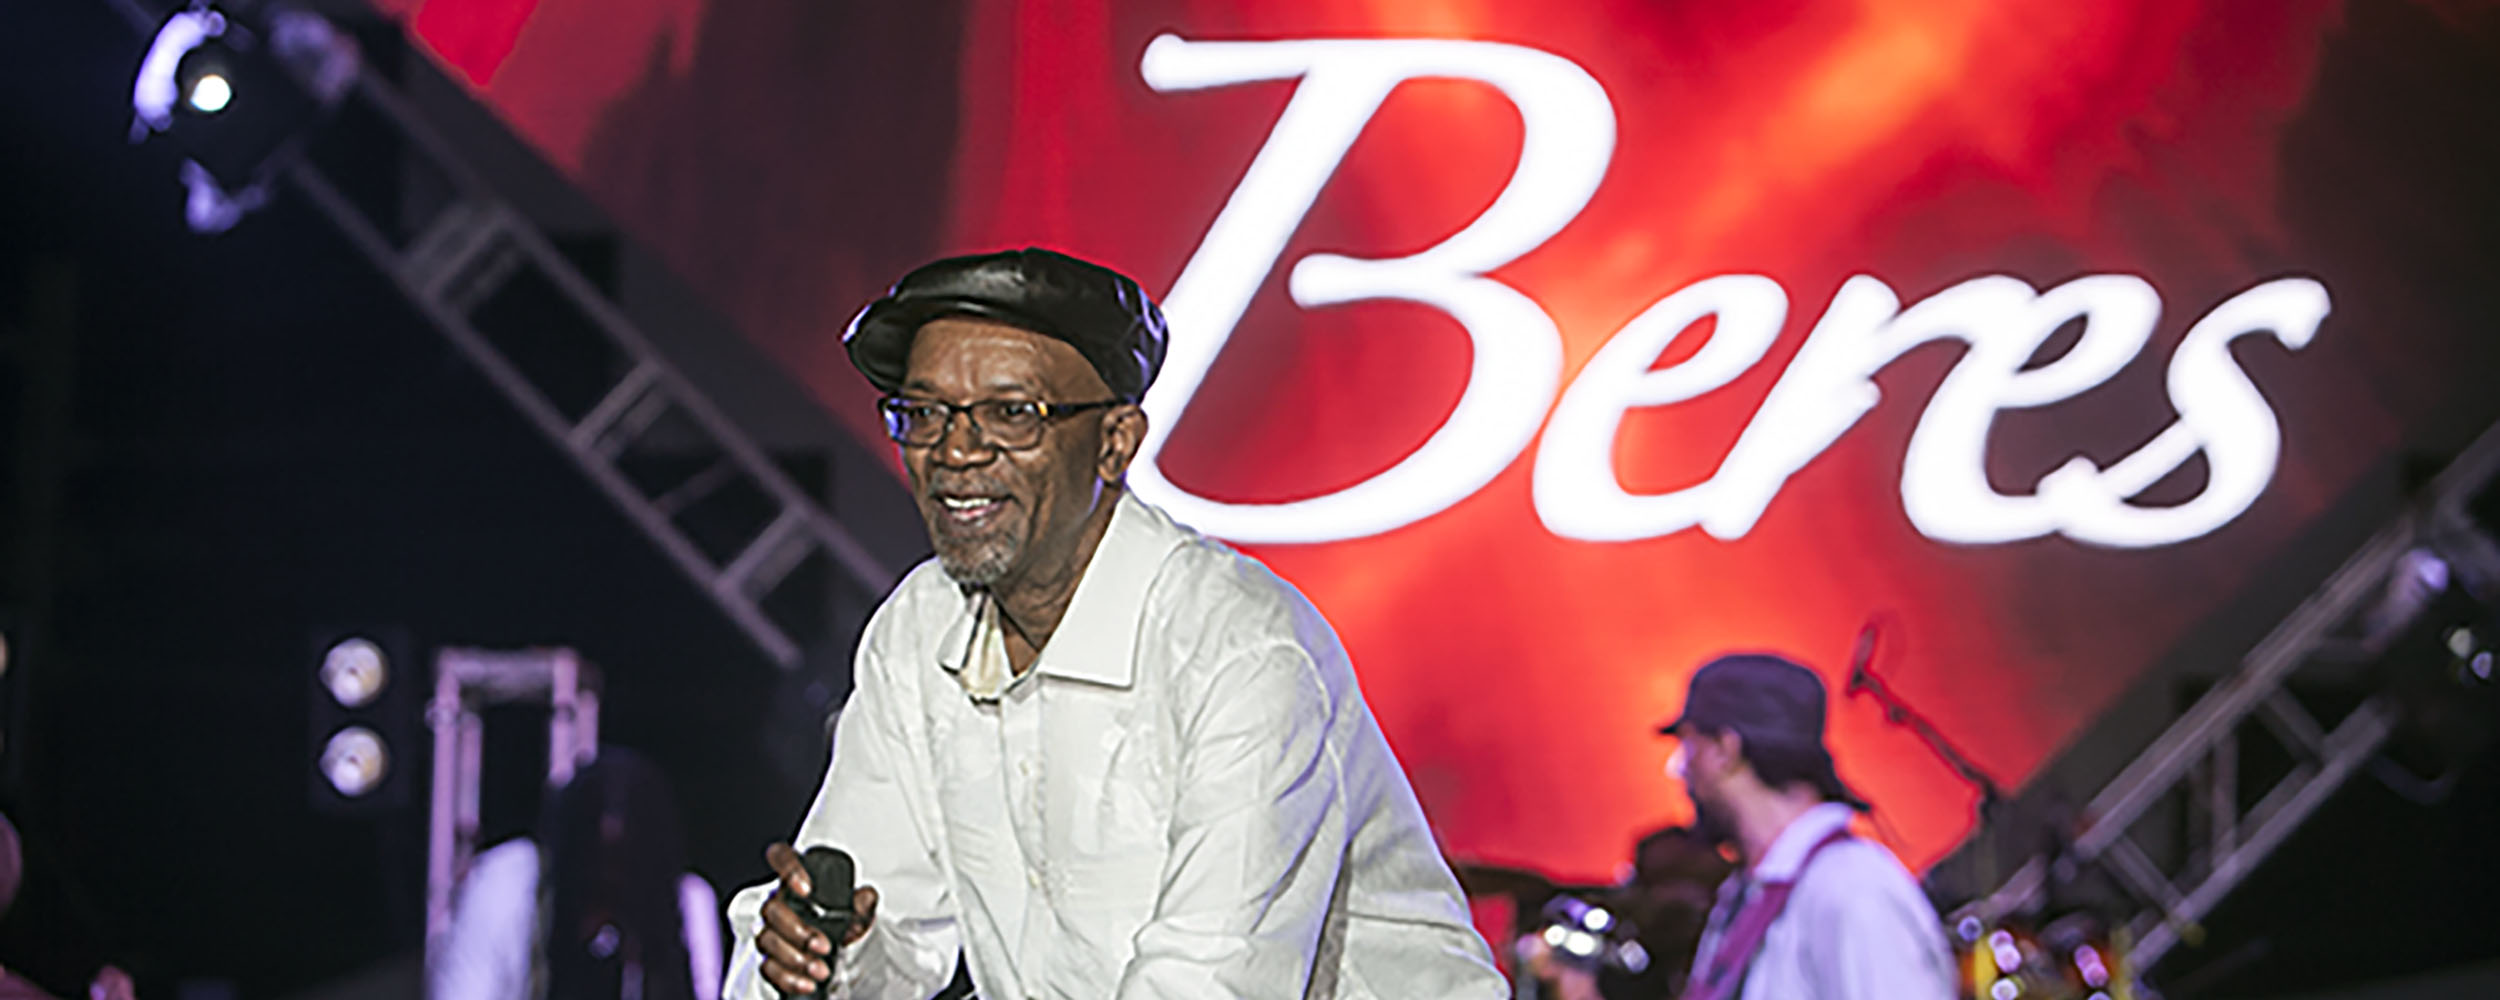 Beres Hammond Woodstock Negril 2017 - Clive's Transport Service Jamaica - www.clivestransportservicejamaica.com - www.clivestransportservicejamaica.net